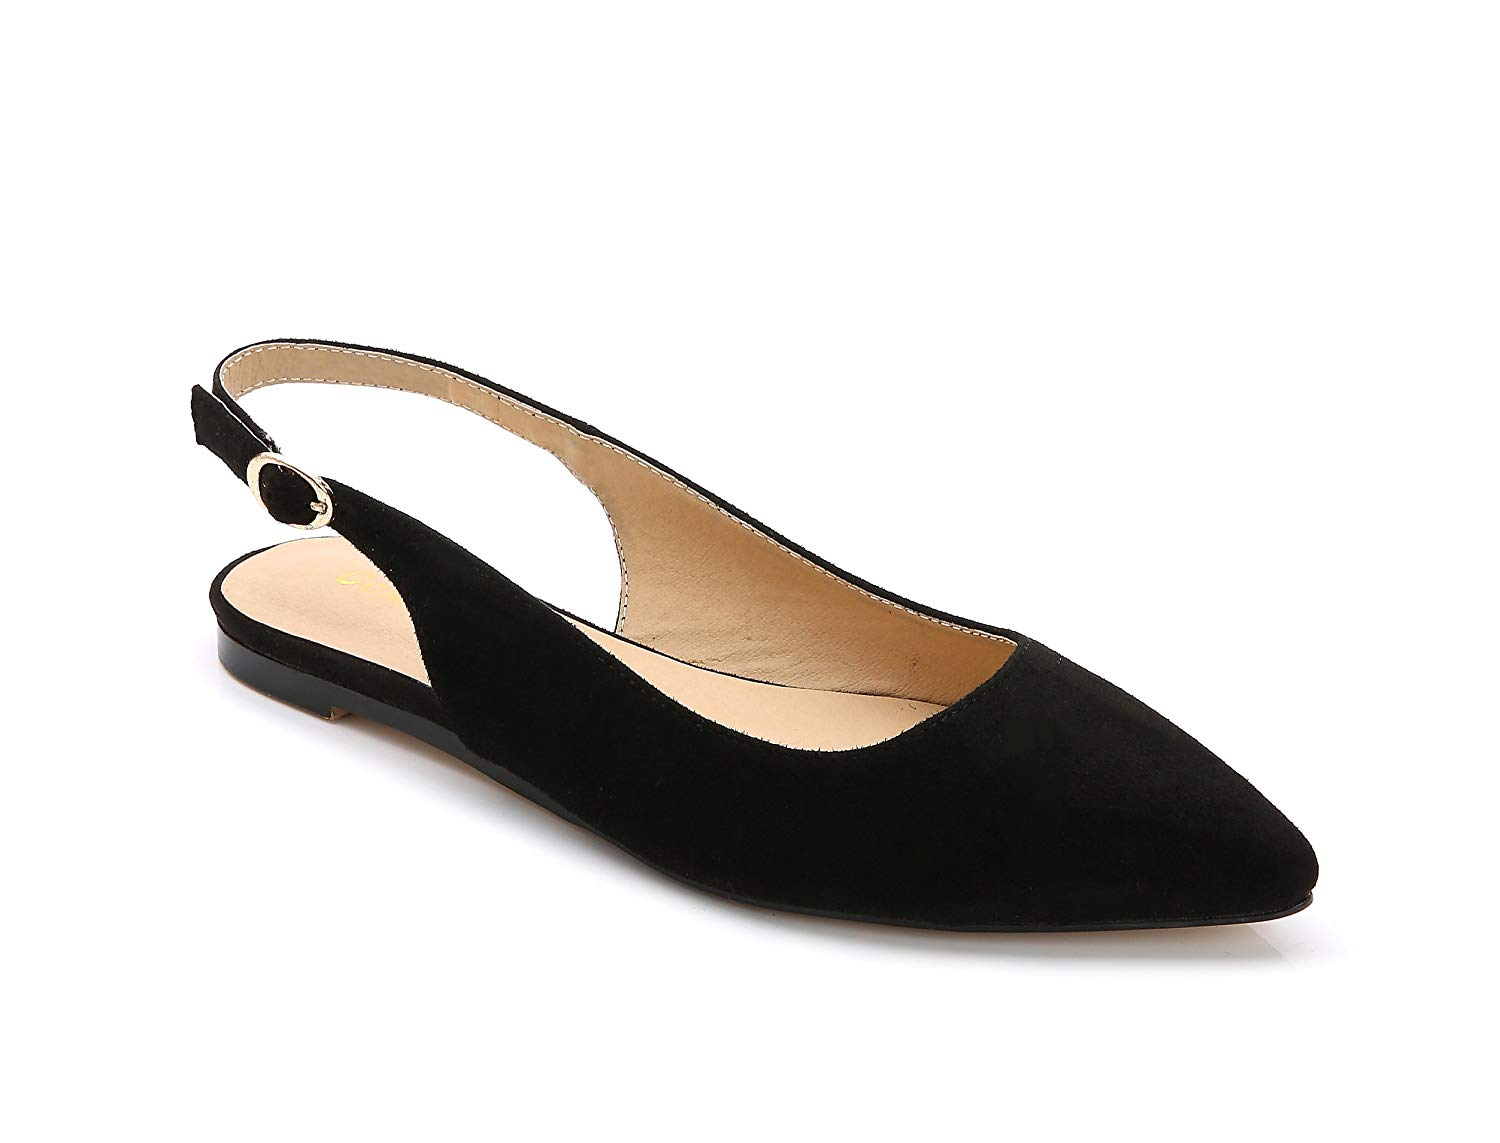 ComeShun Womens Shoes Comfort Ankle Strap Pointed Toe Flats Dress Wedding Bridal Pumps